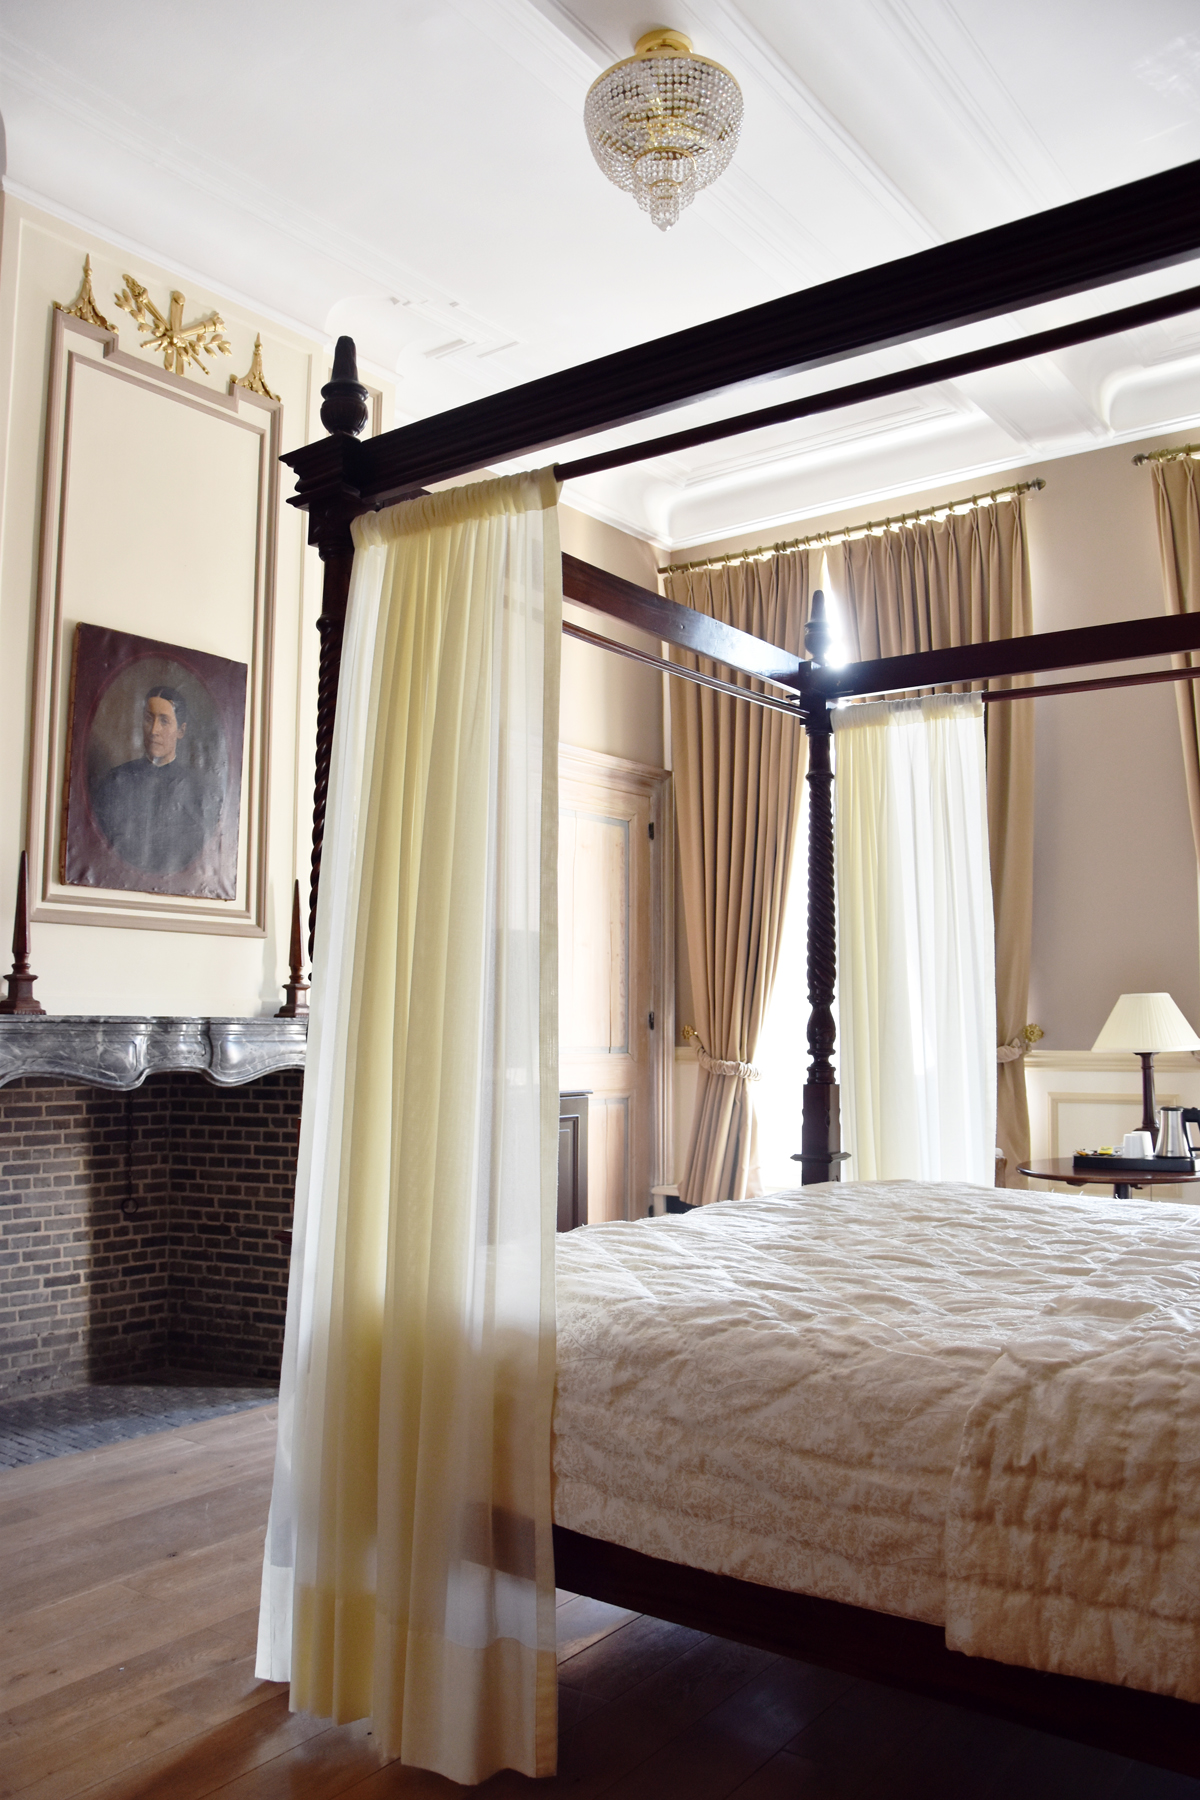 irenevanguin-travel-hotspot-brugge-bruges-hotel-tuilerieen-suite-executive-royal